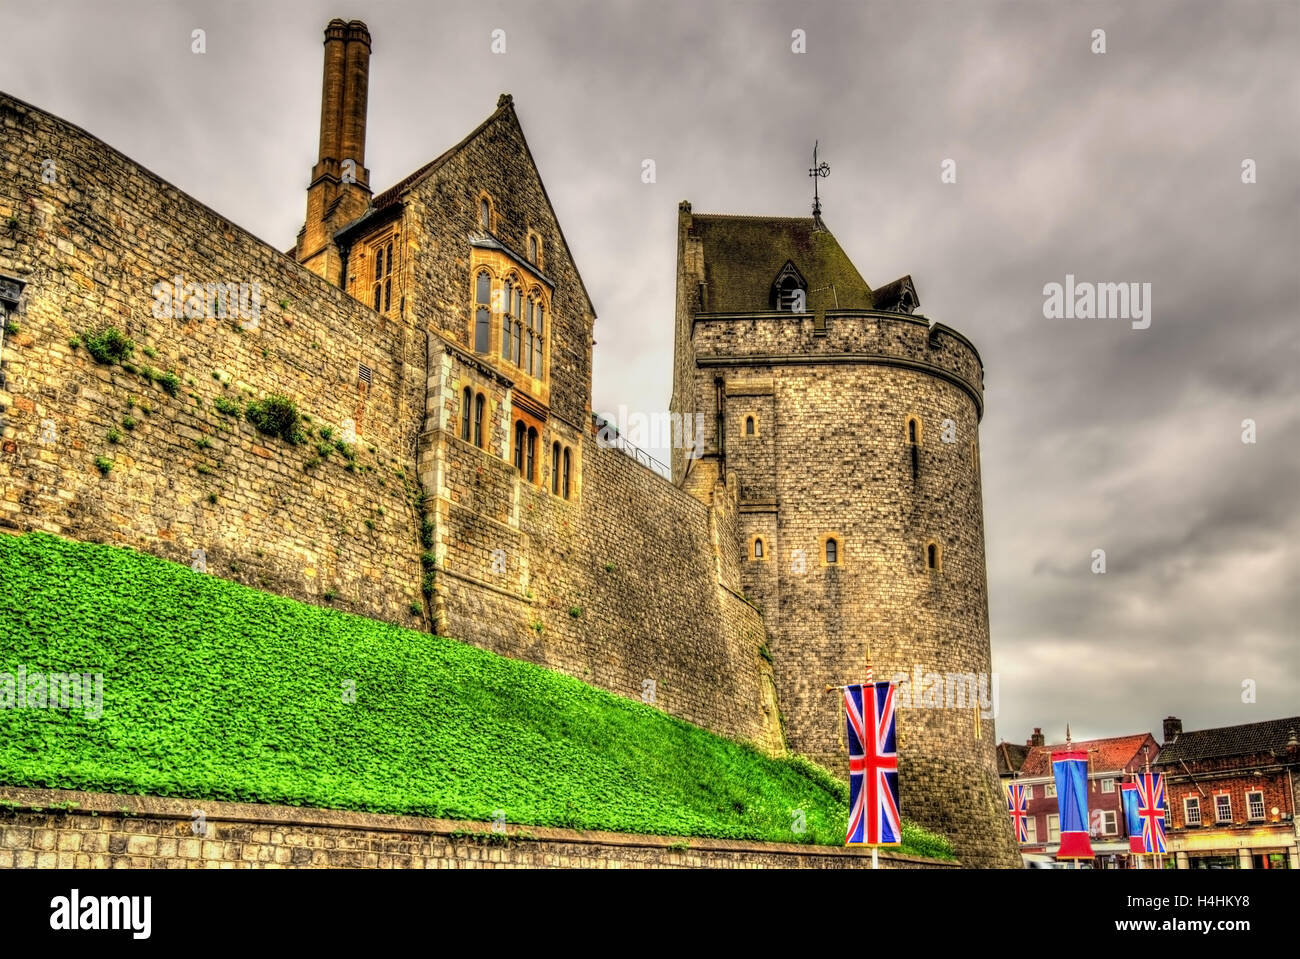 Towers of Windsor Castle near London, England - Stock Image